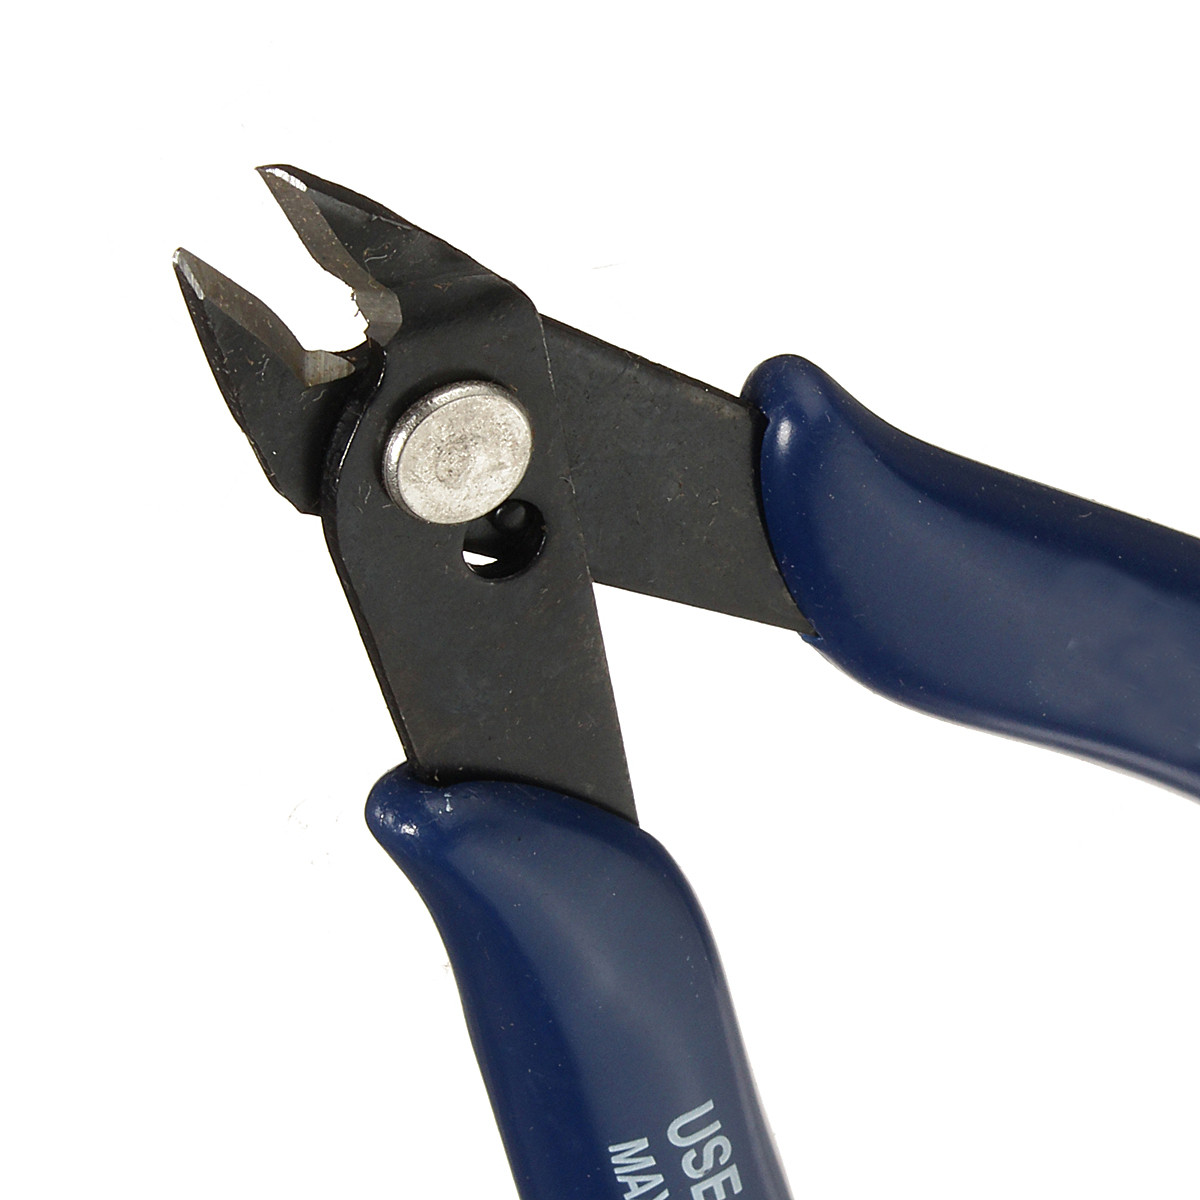 5PCS DANIU Electrical Cutting Plier Wire Cable Cutter Side Snips Flush Pliers Tool